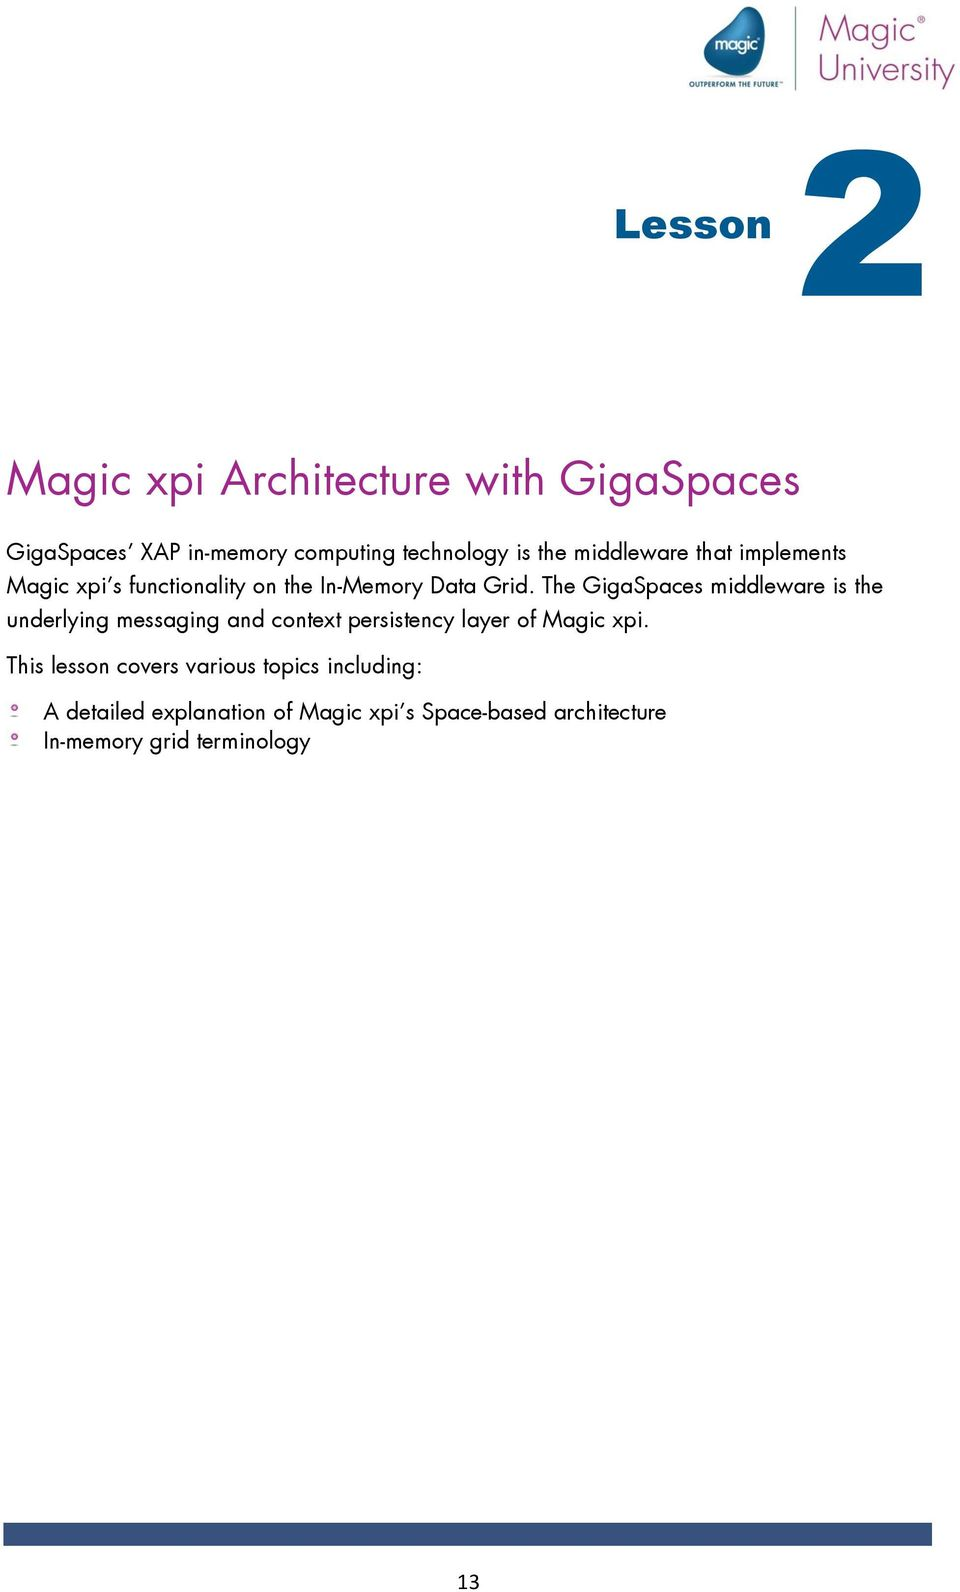 Lifting Off into Space-based Architecture with Magic xpi 4 x